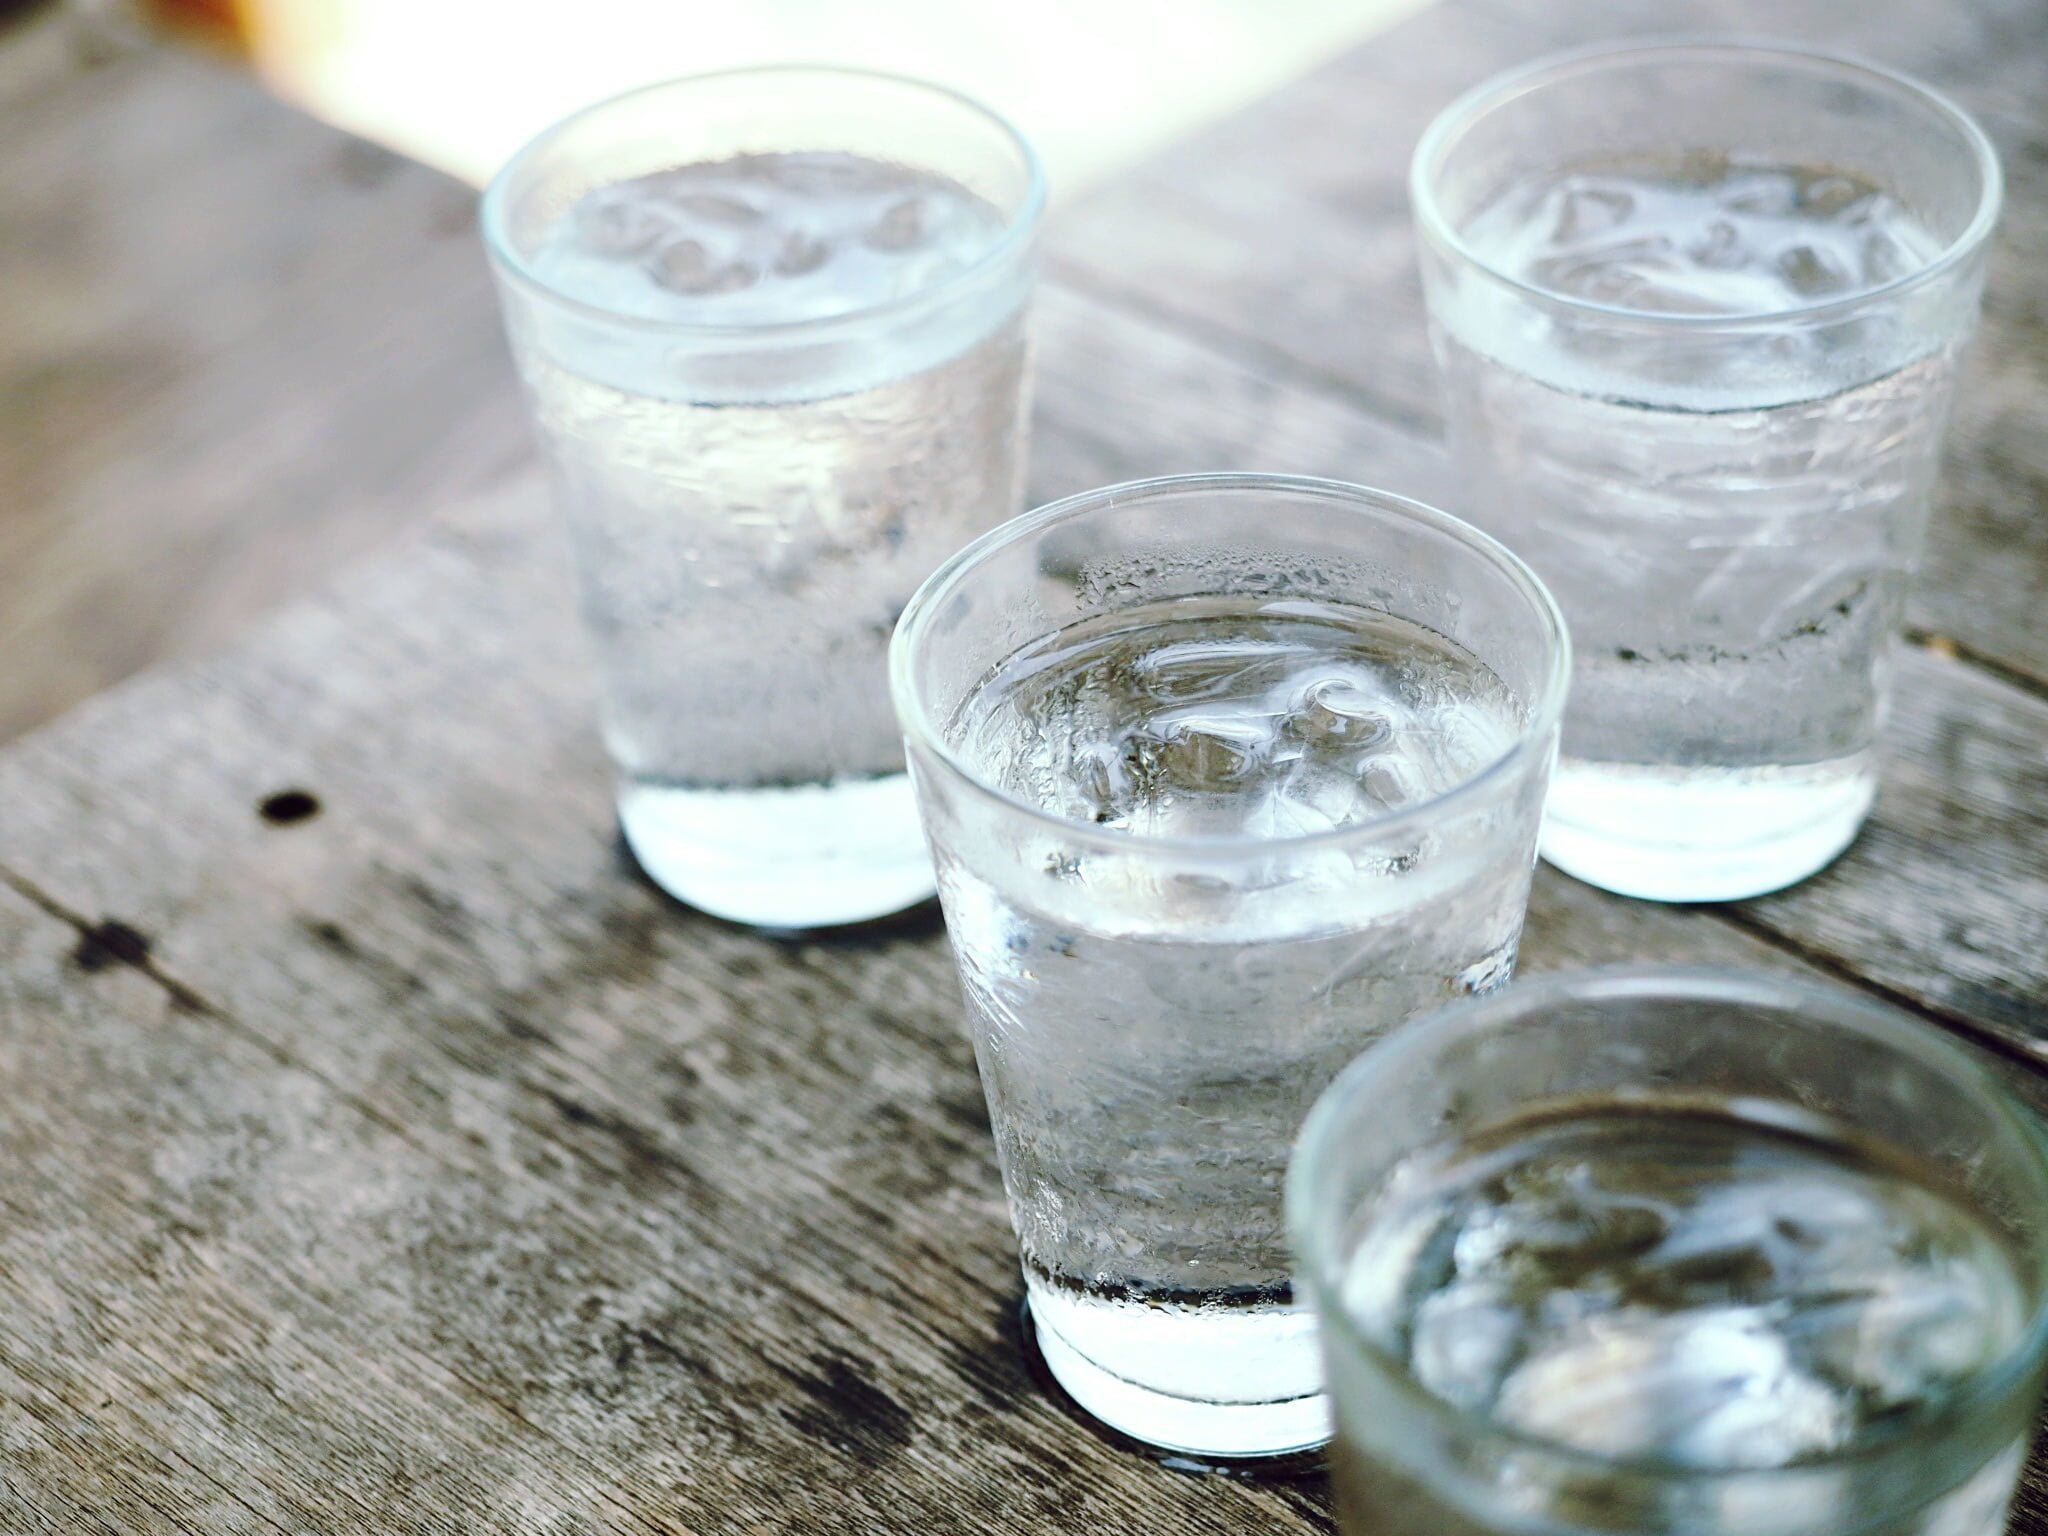 Drink lots of water when detoxing to move those toxins out of your body!